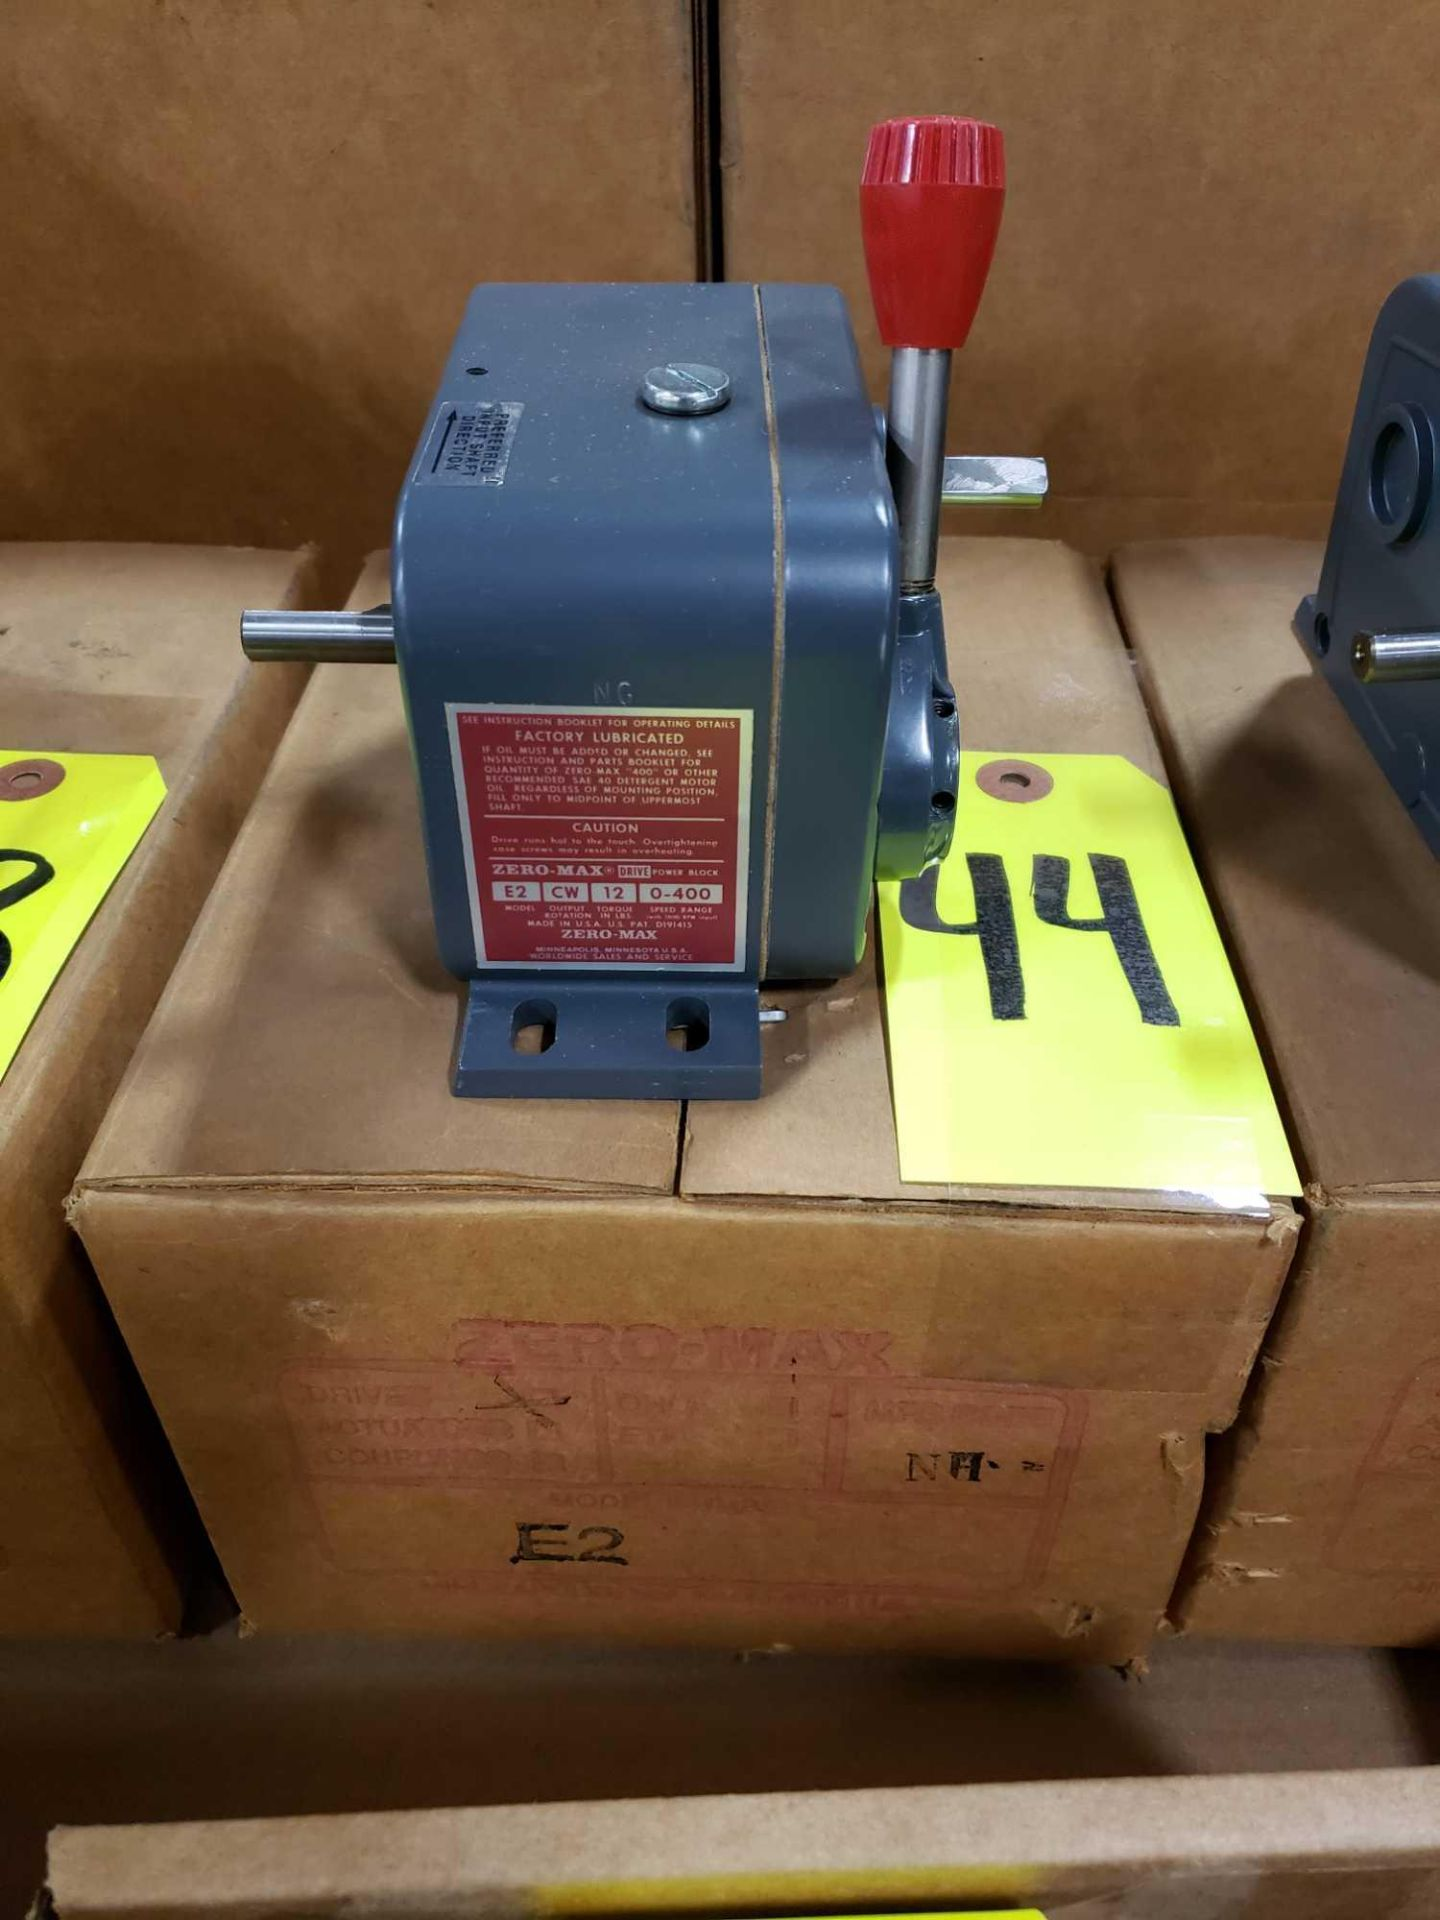 Lot 44 - Zero-max drive power block model E2, CW output rotation, 12lb torque, 0-400 speed range. New.